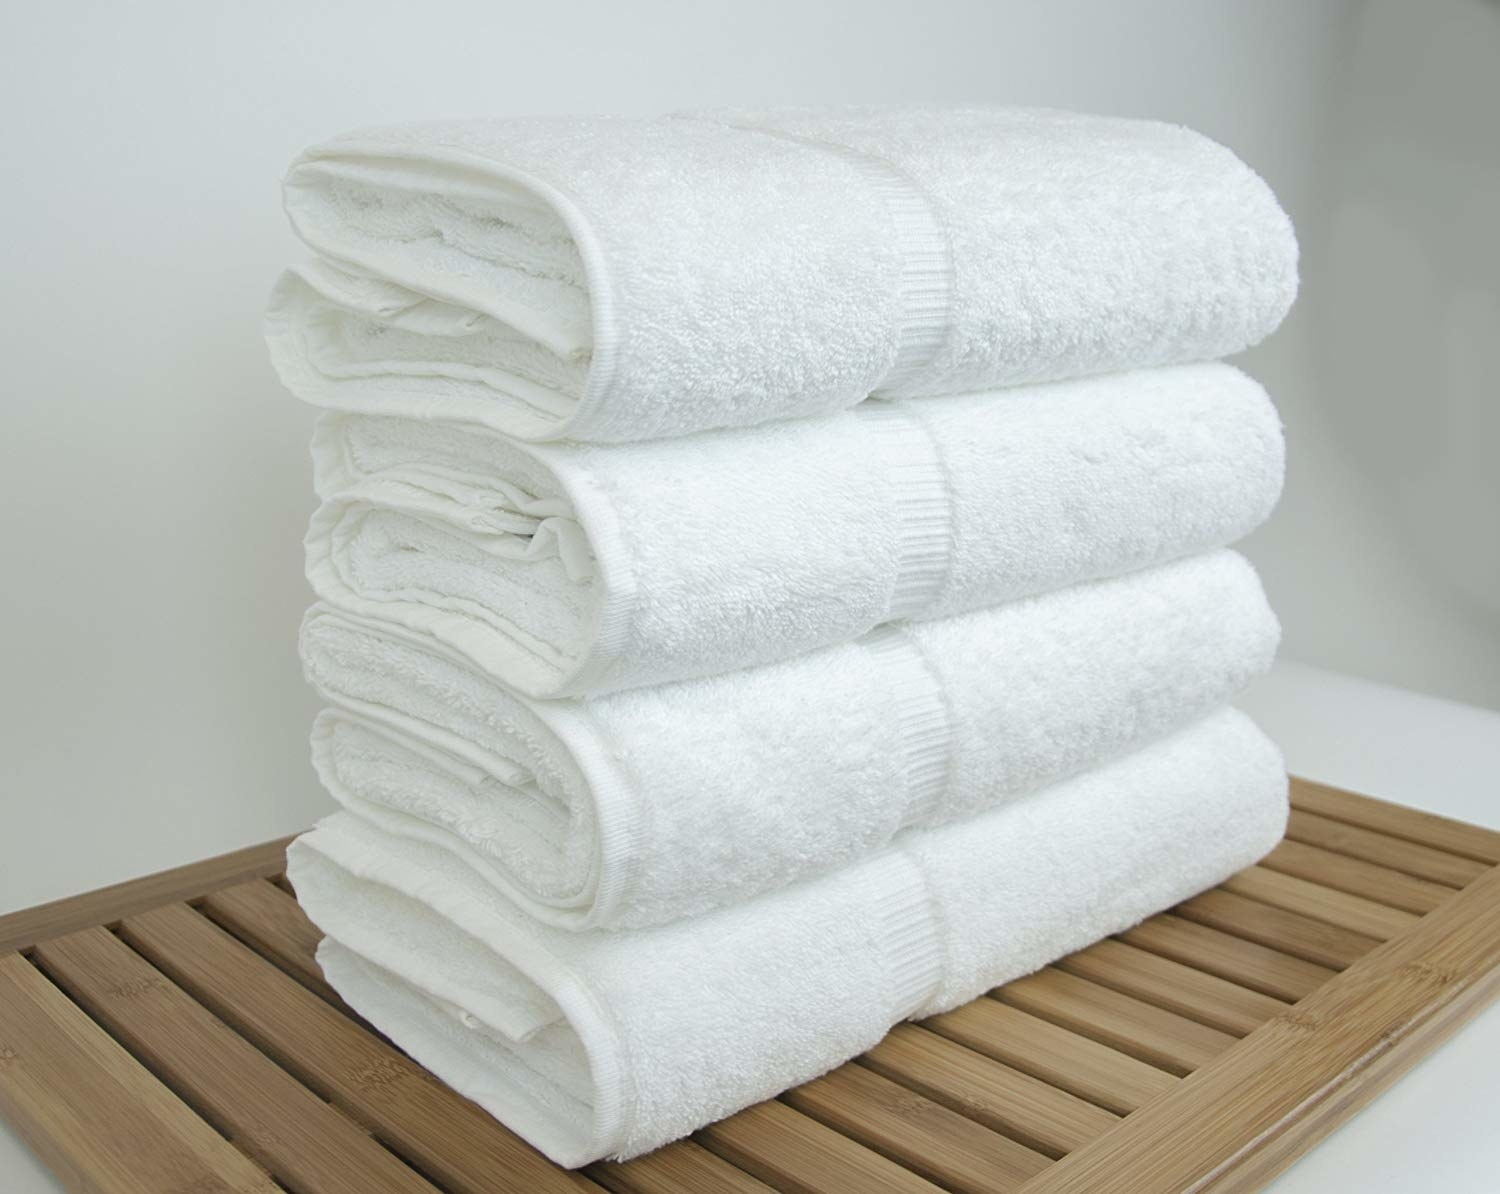 A stack of the towels in white